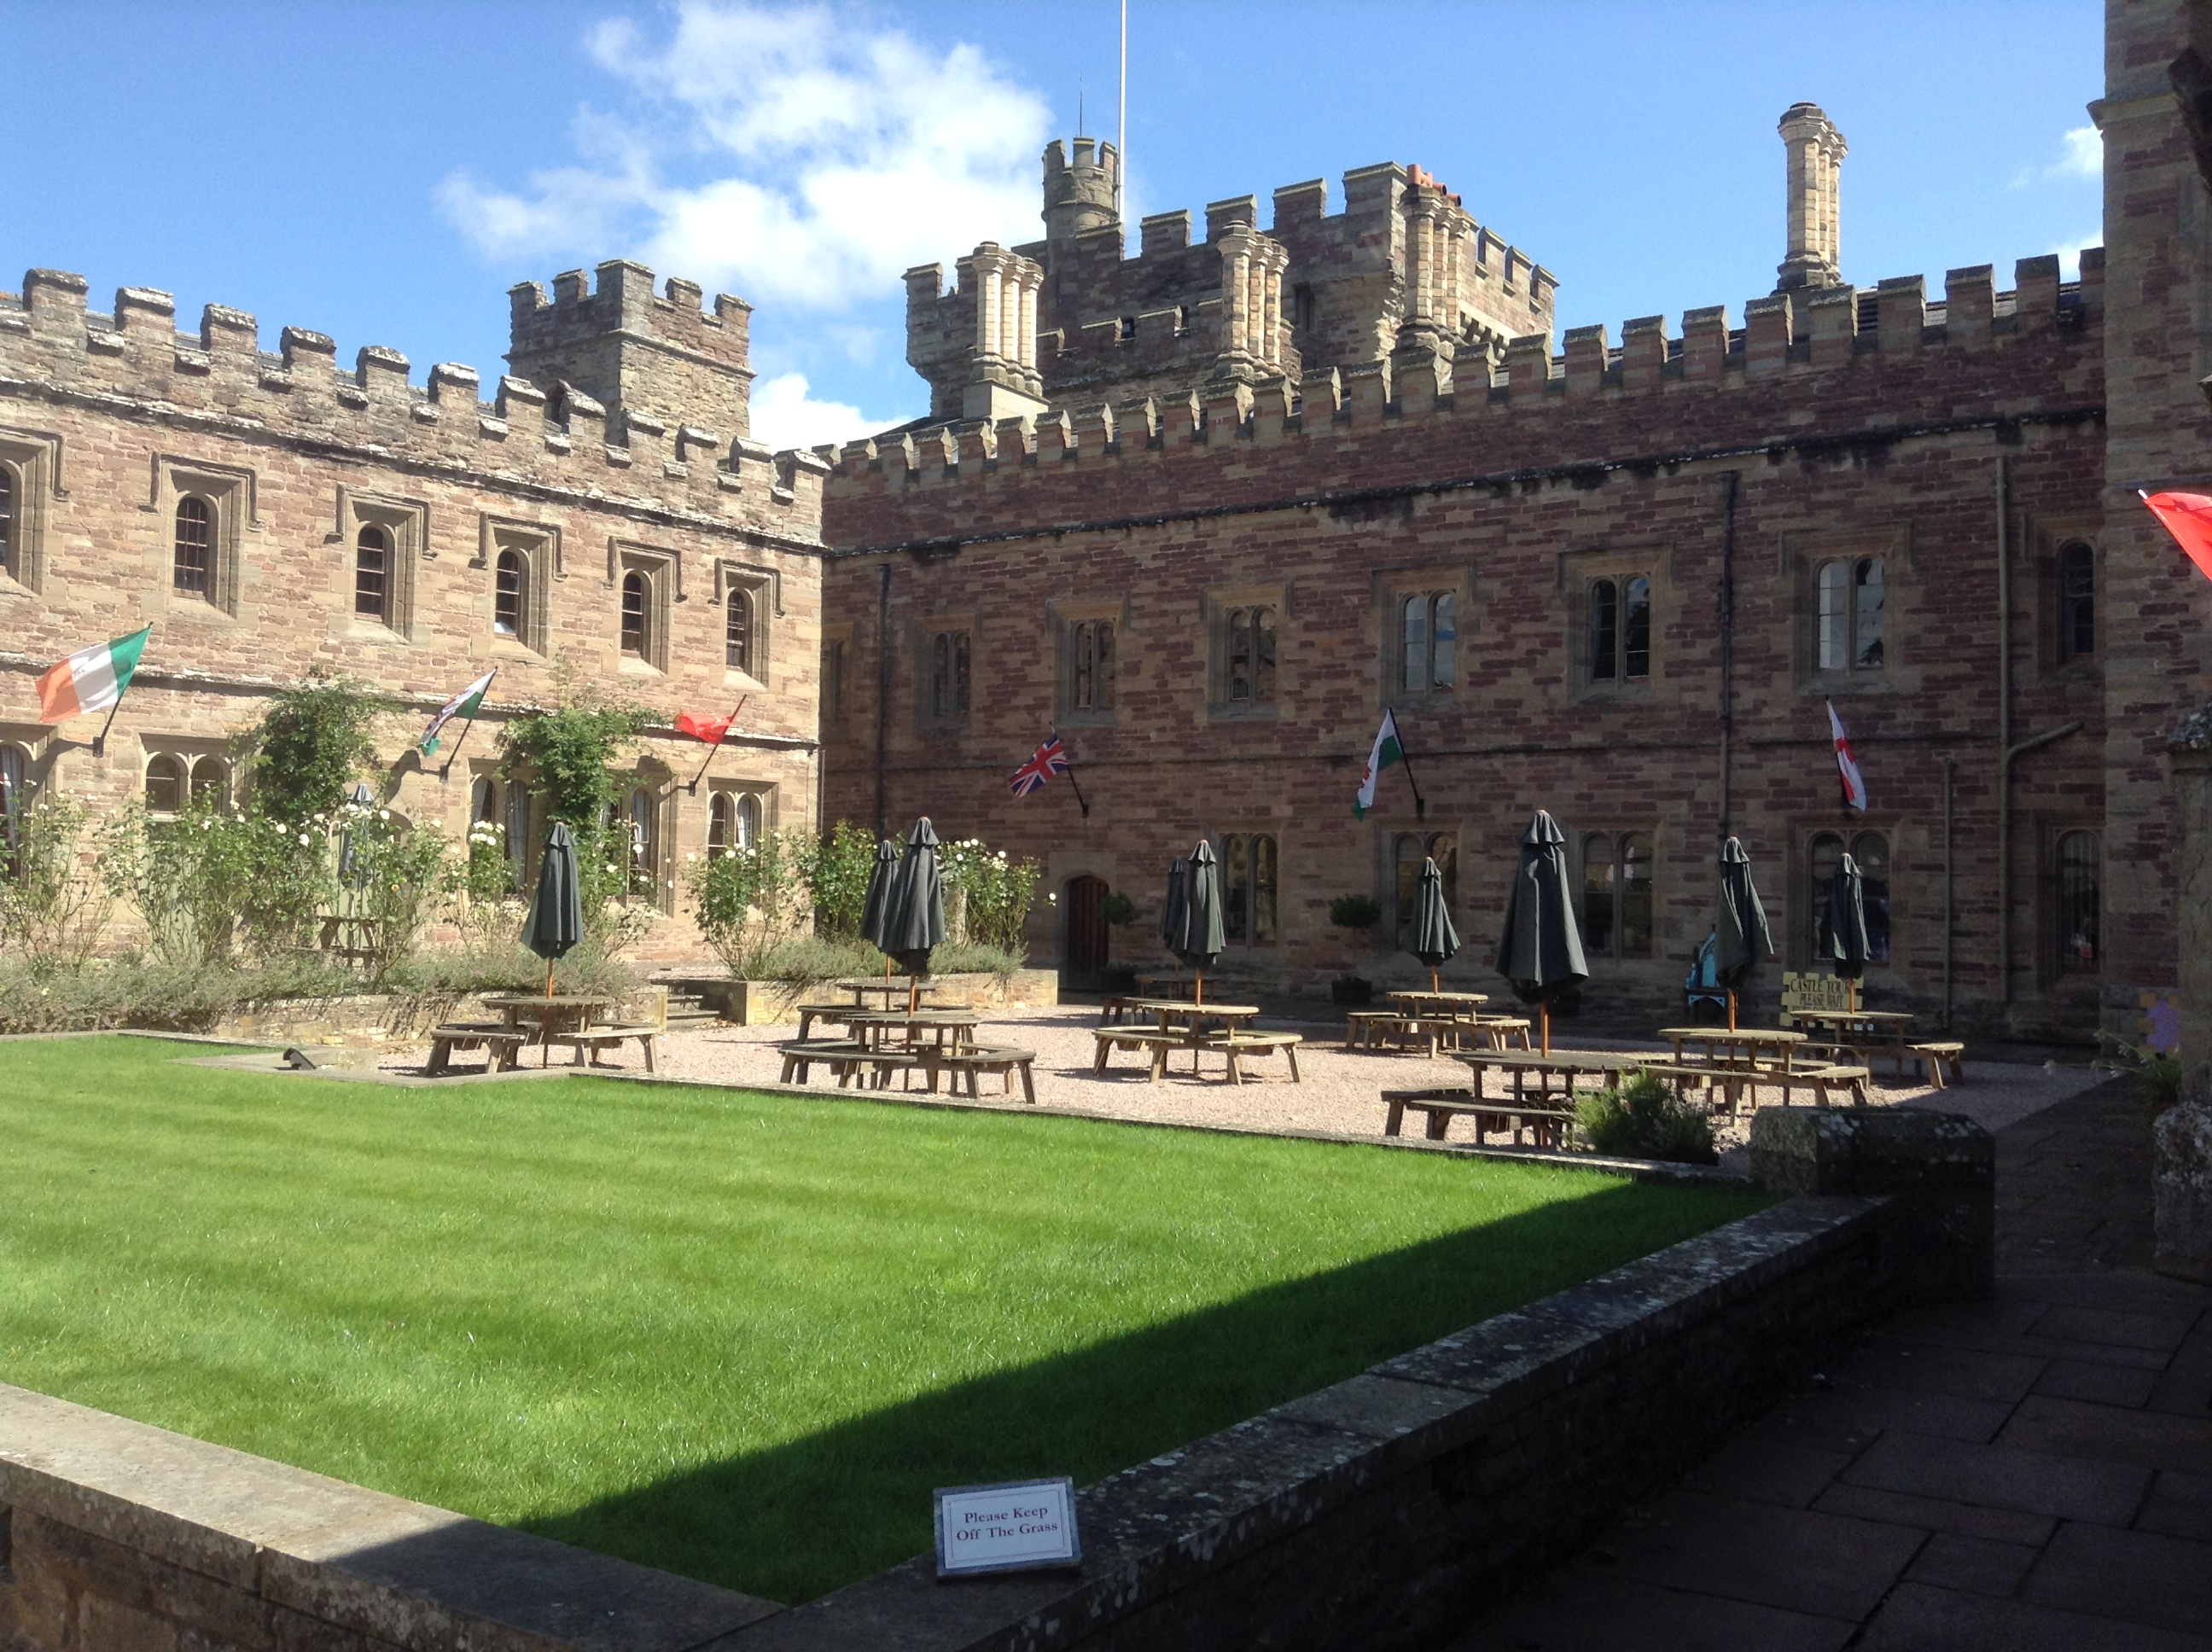 The courtyard, Hampton Court Castle, Herefordshire